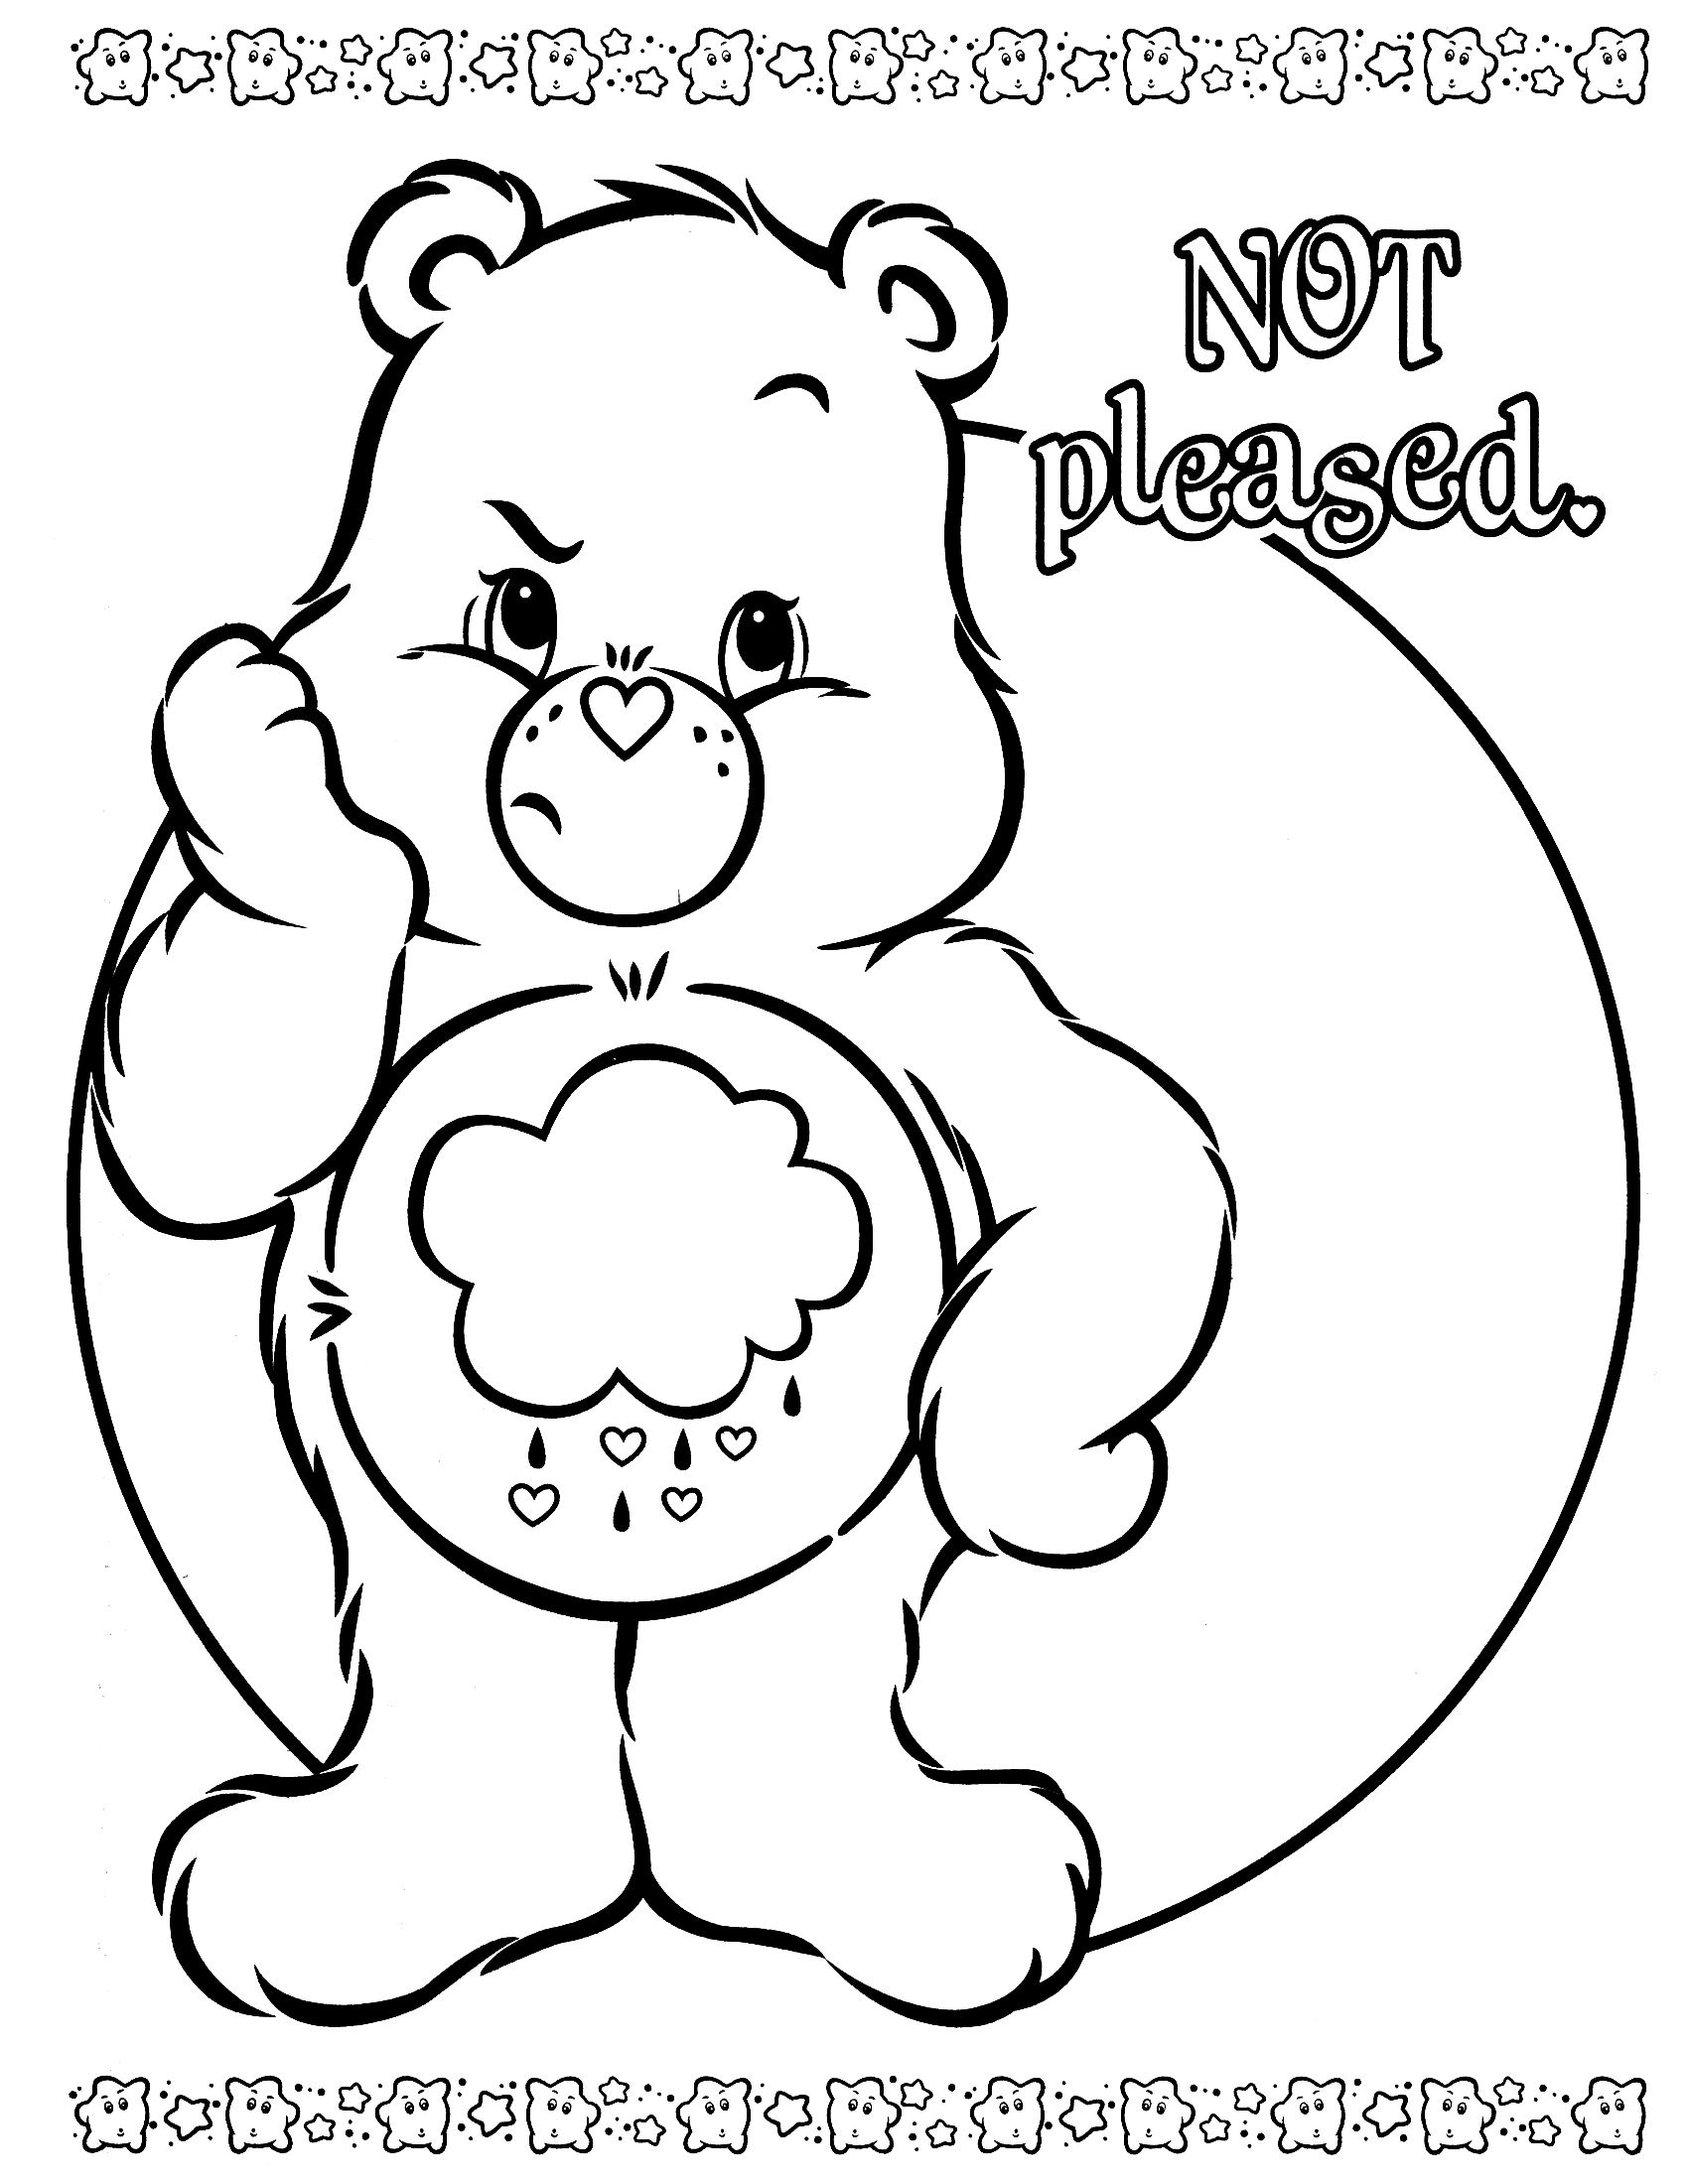 care bears cousins coloring pages - photo#23